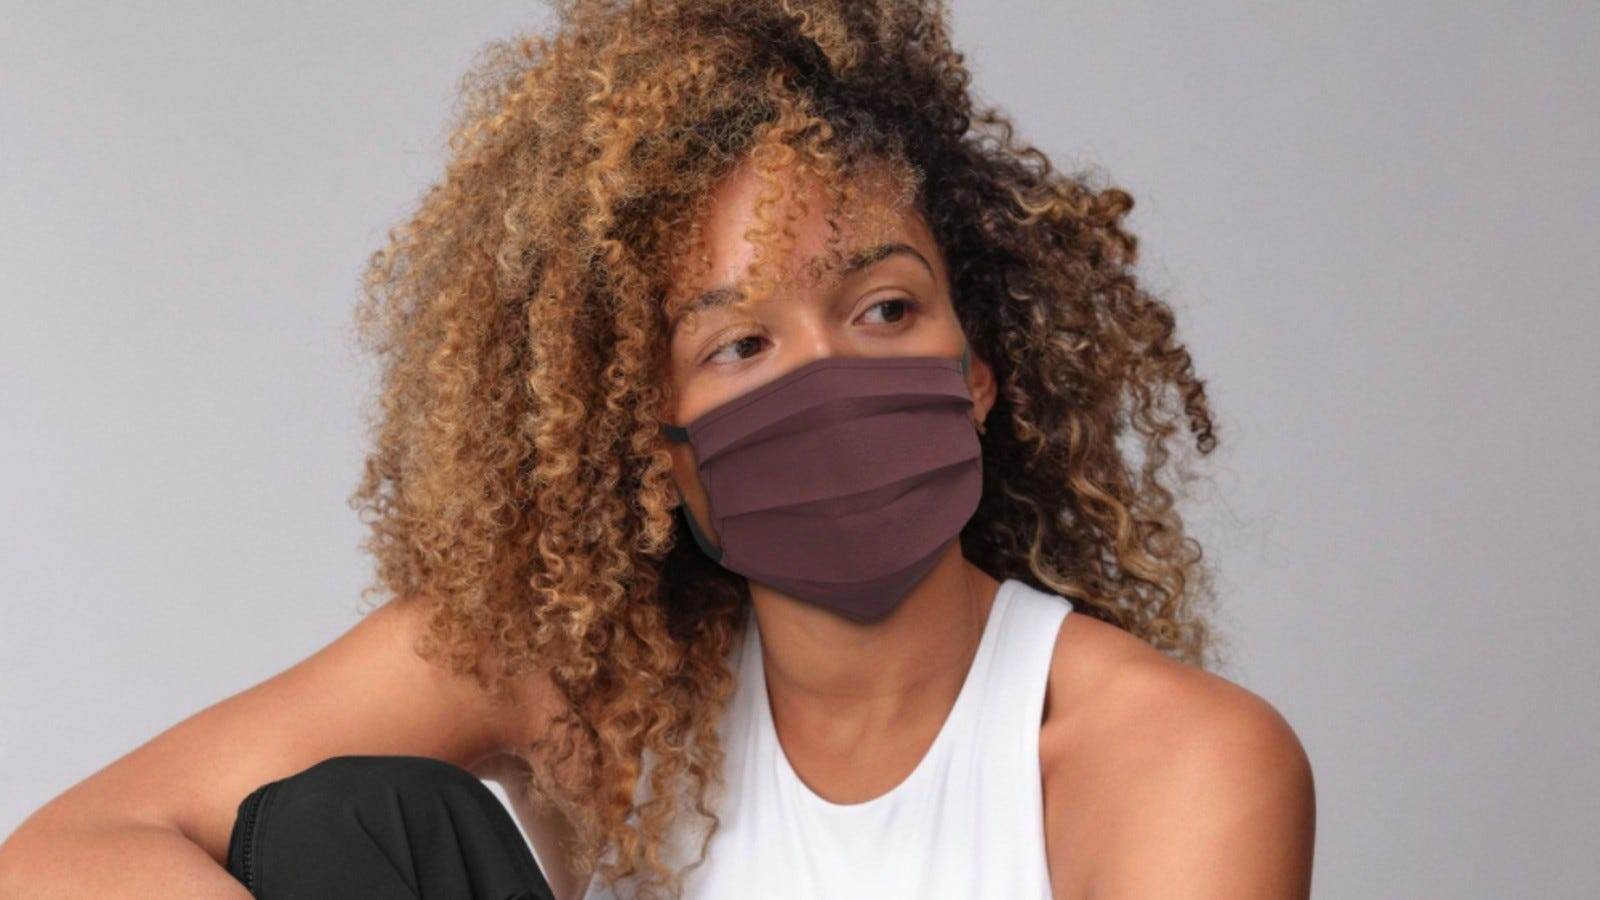 A woman wearing a brown Athleta Everyday Non-Medical Mask.